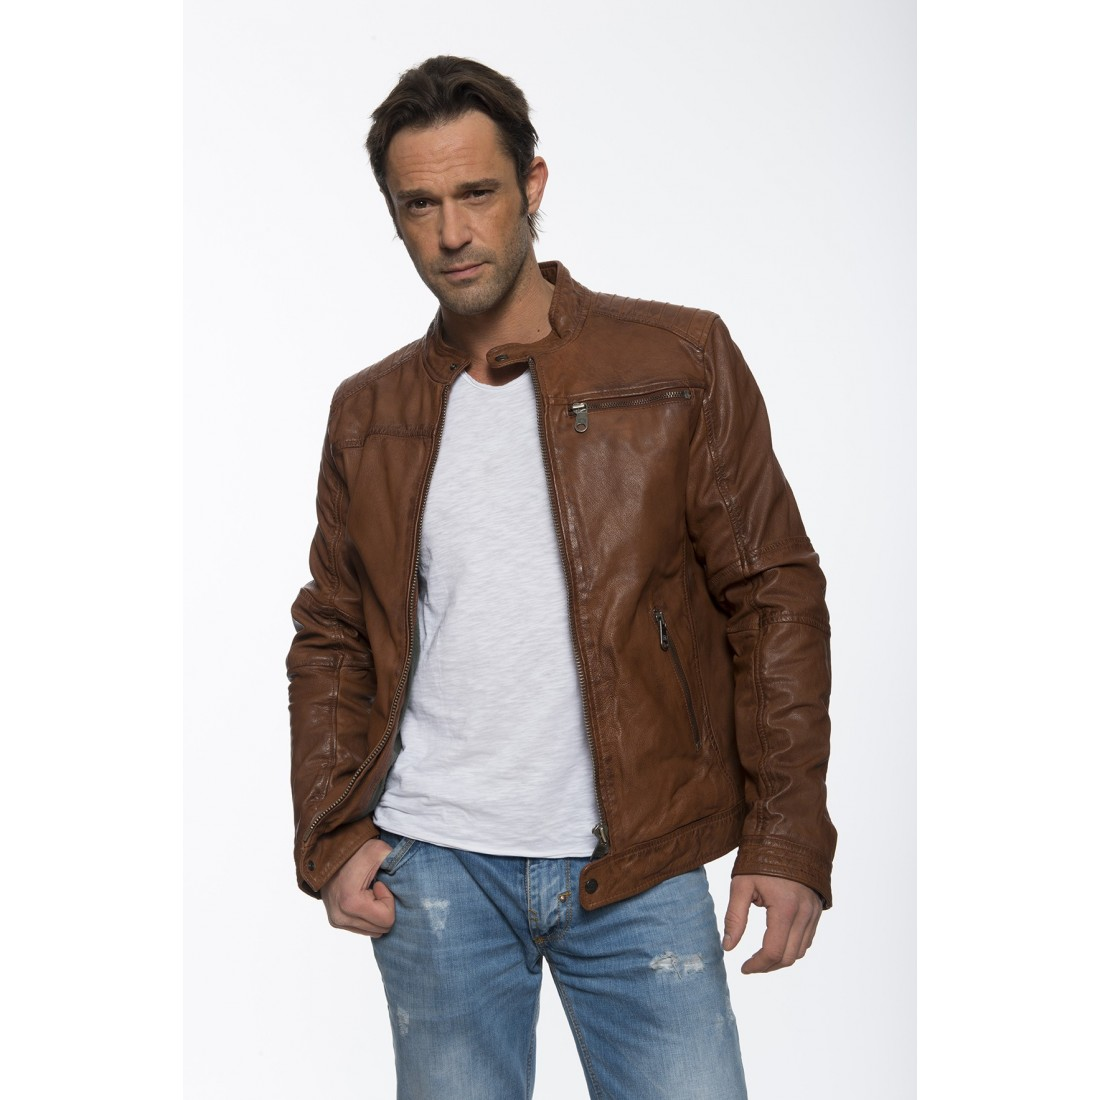 veste cognac homme ralph veste en cuir d agneau cognac homme veste cognac en cuir pour homme christ. Black Bedroom Furniture Sets. Home Design Ideas